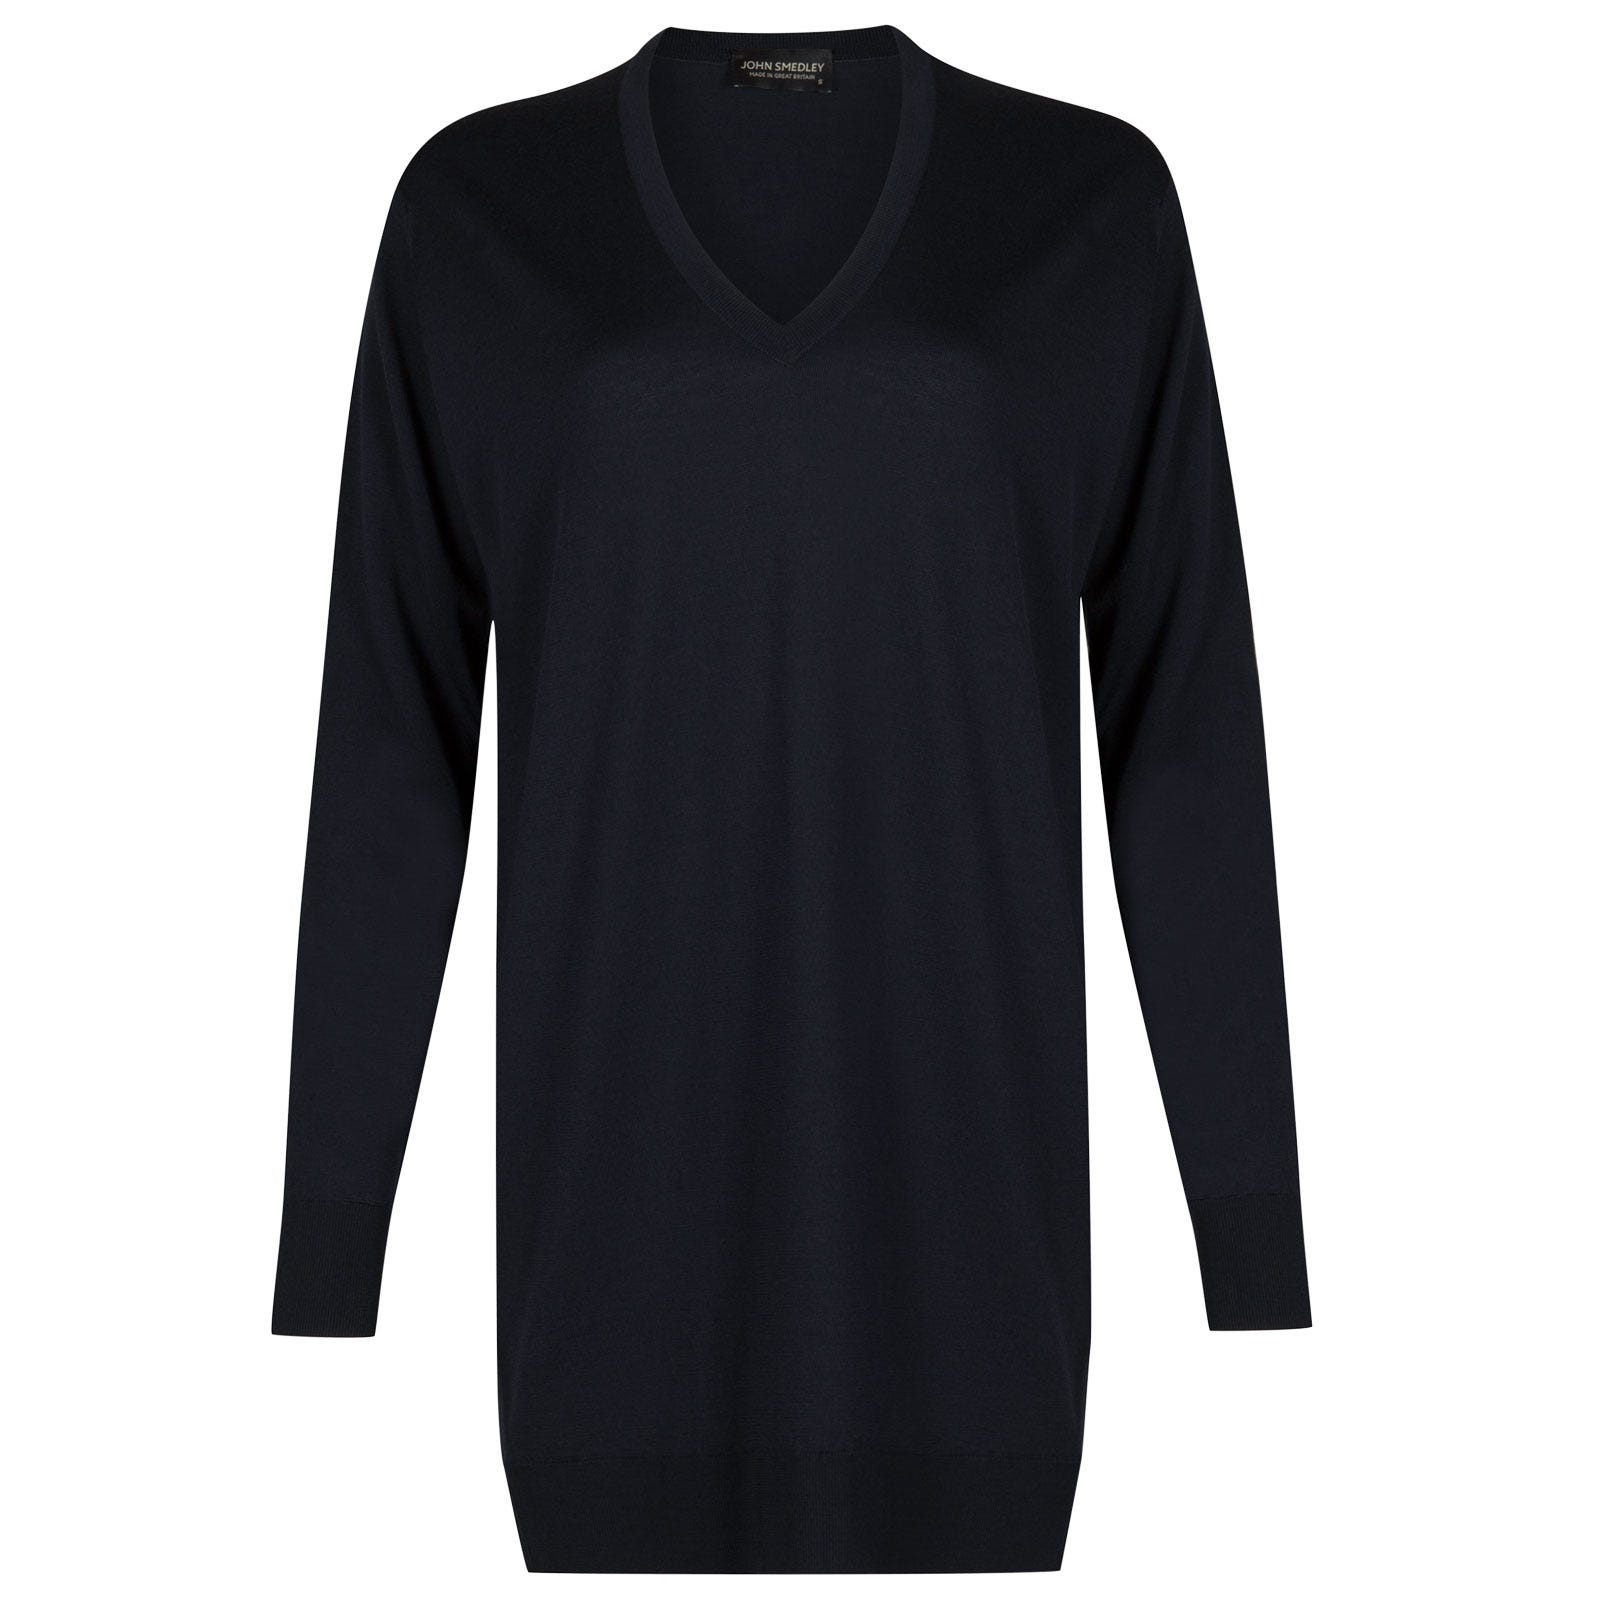 John Smedley Alma Merino Wool Sweater in Midnight-XL